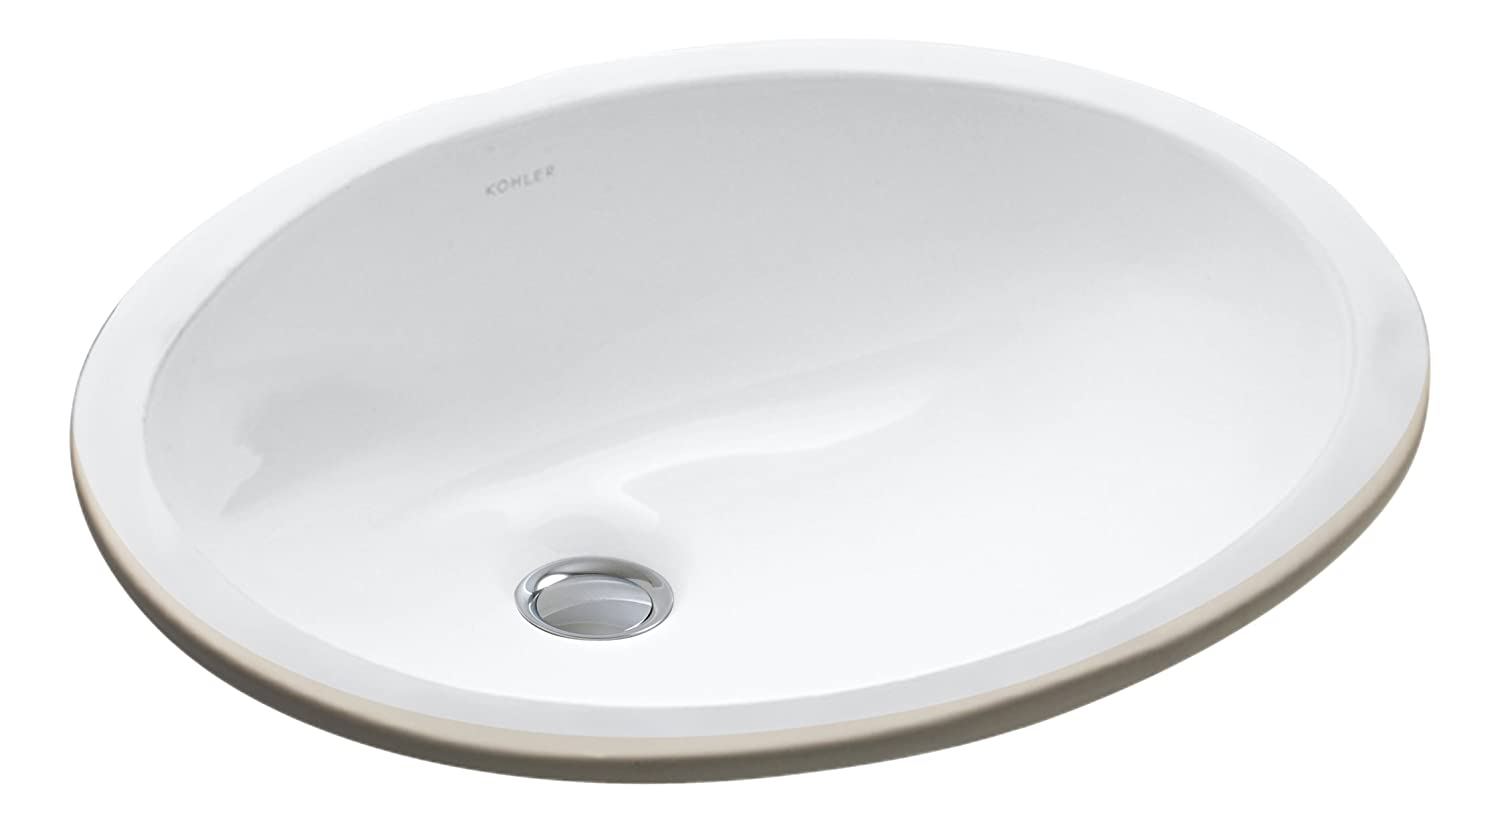 KOHLER K 2209 0 Caxton Undercounter Bathroom Sink, White   Bathroom Sinks    Amazon.com